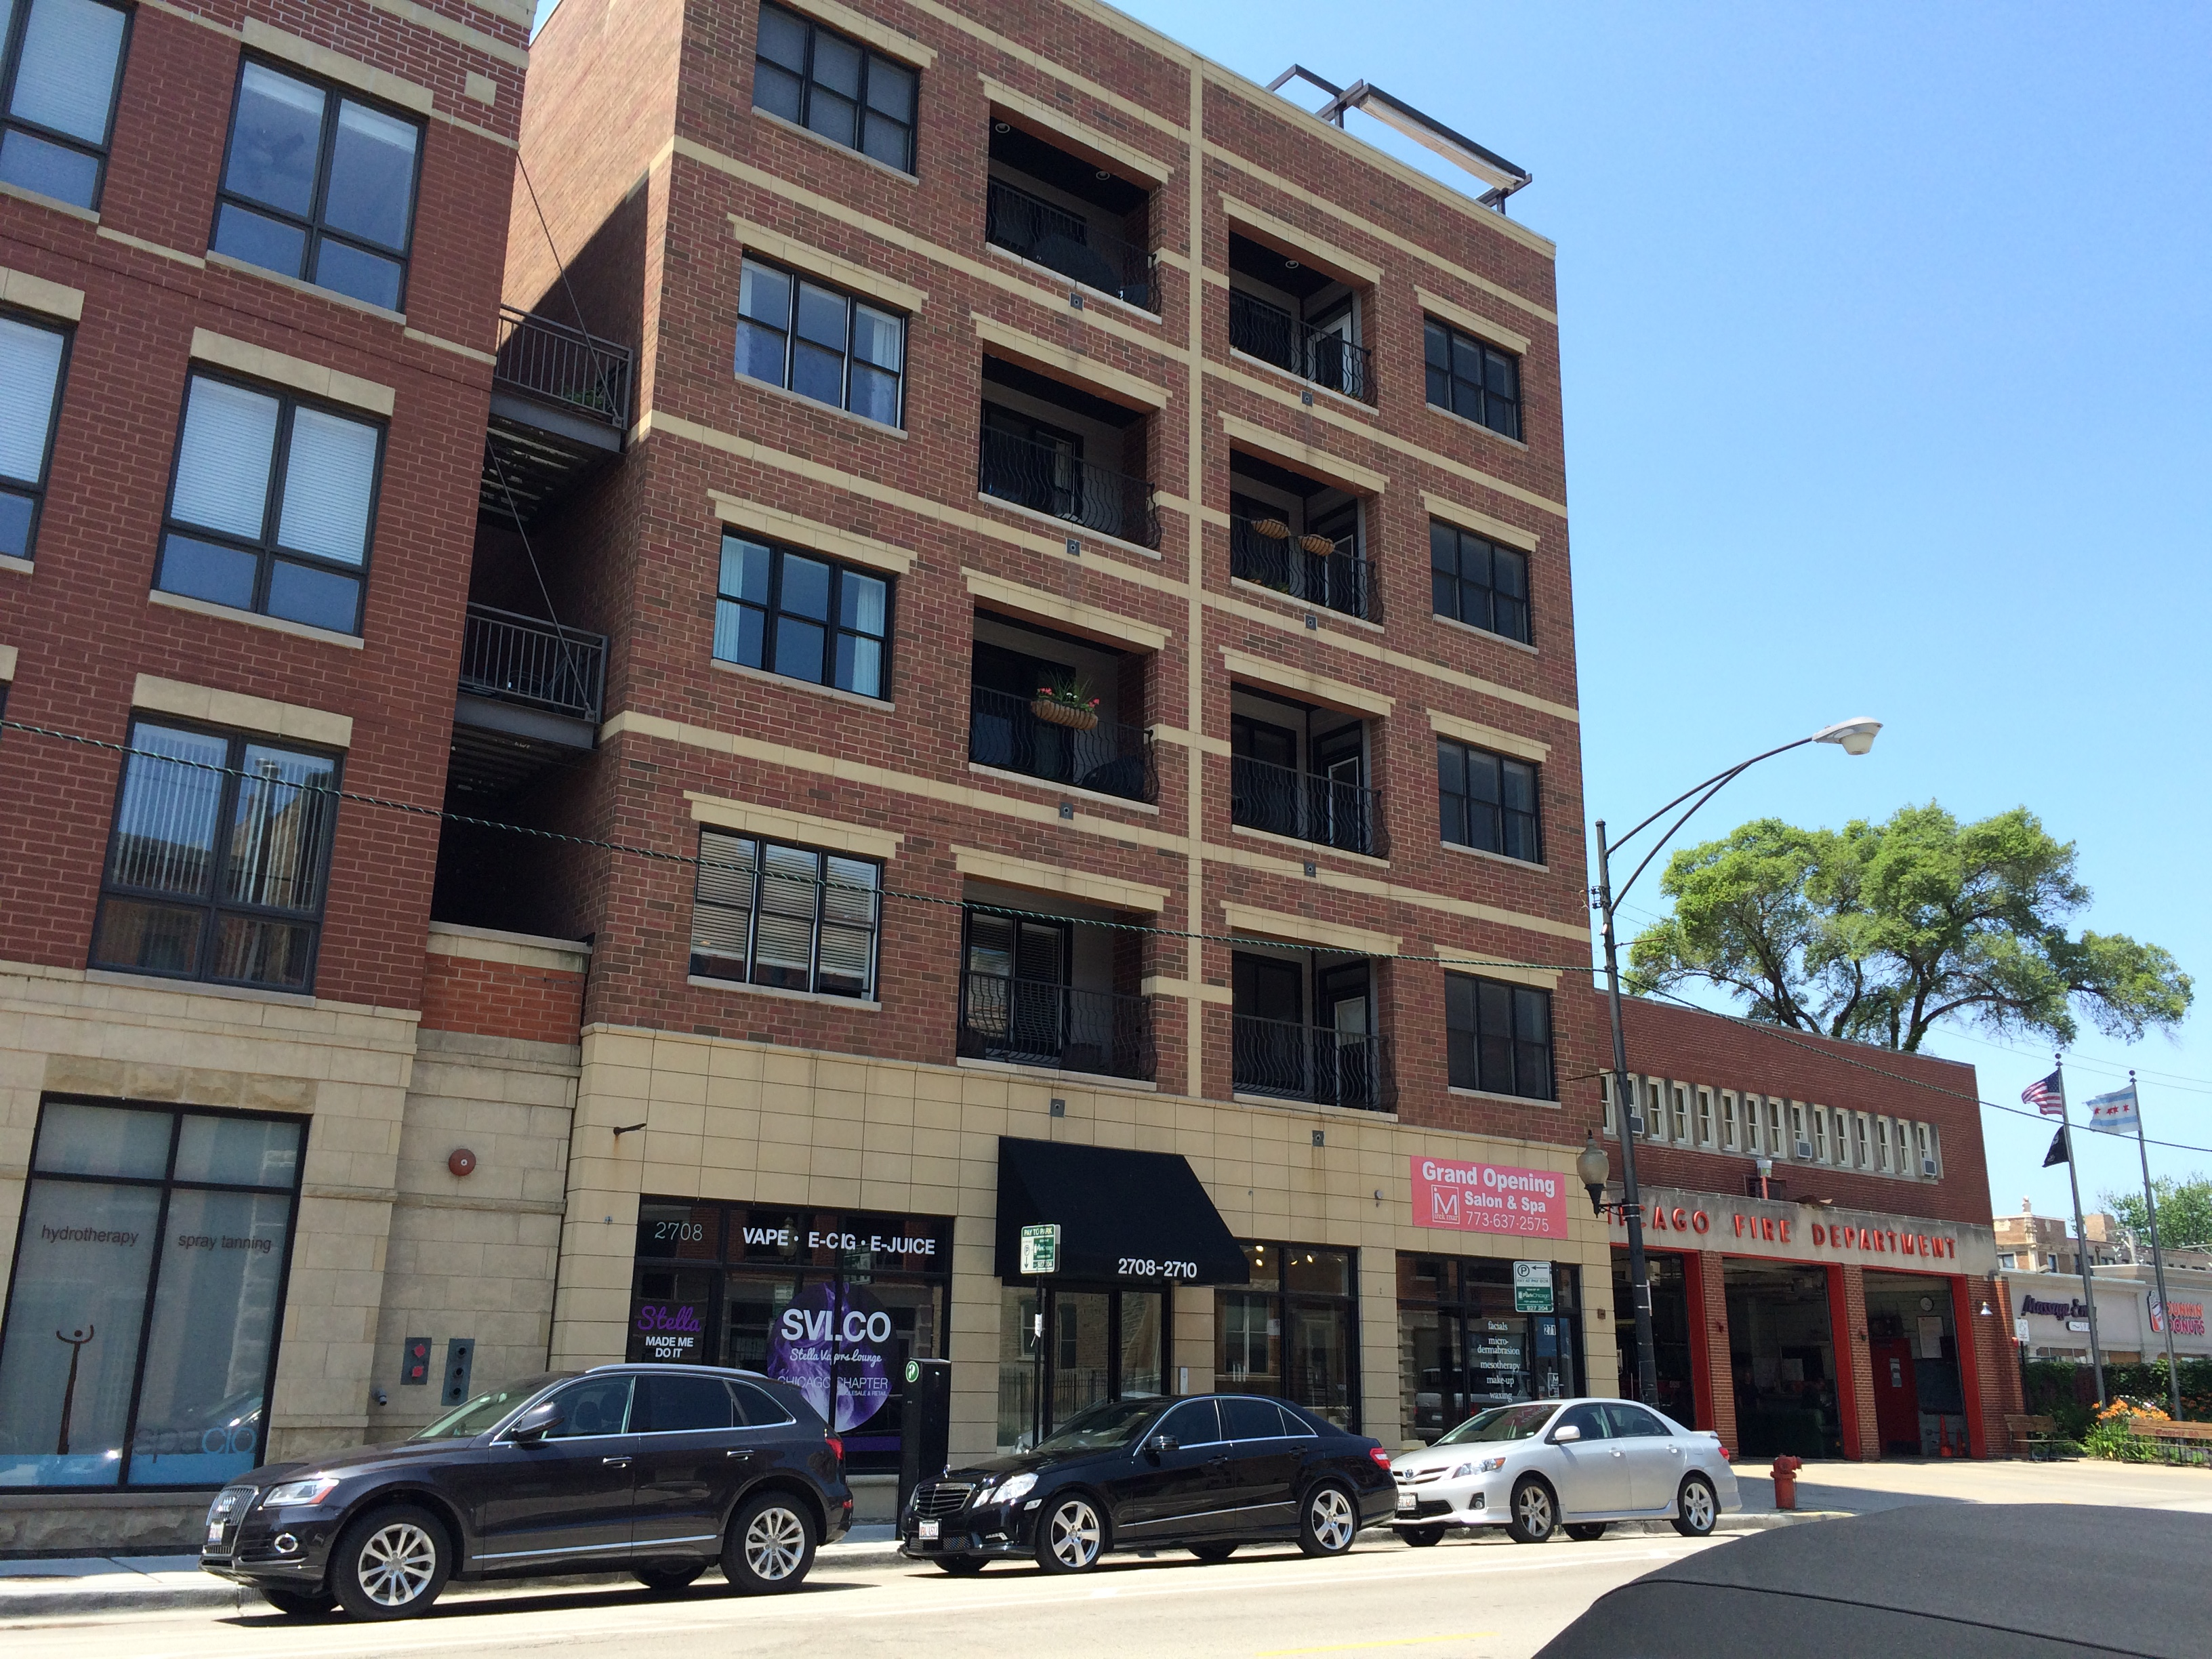 Lincoln Park Commercial Condo For Sale on Halsted Near Diversey – Great Investment Purchase!